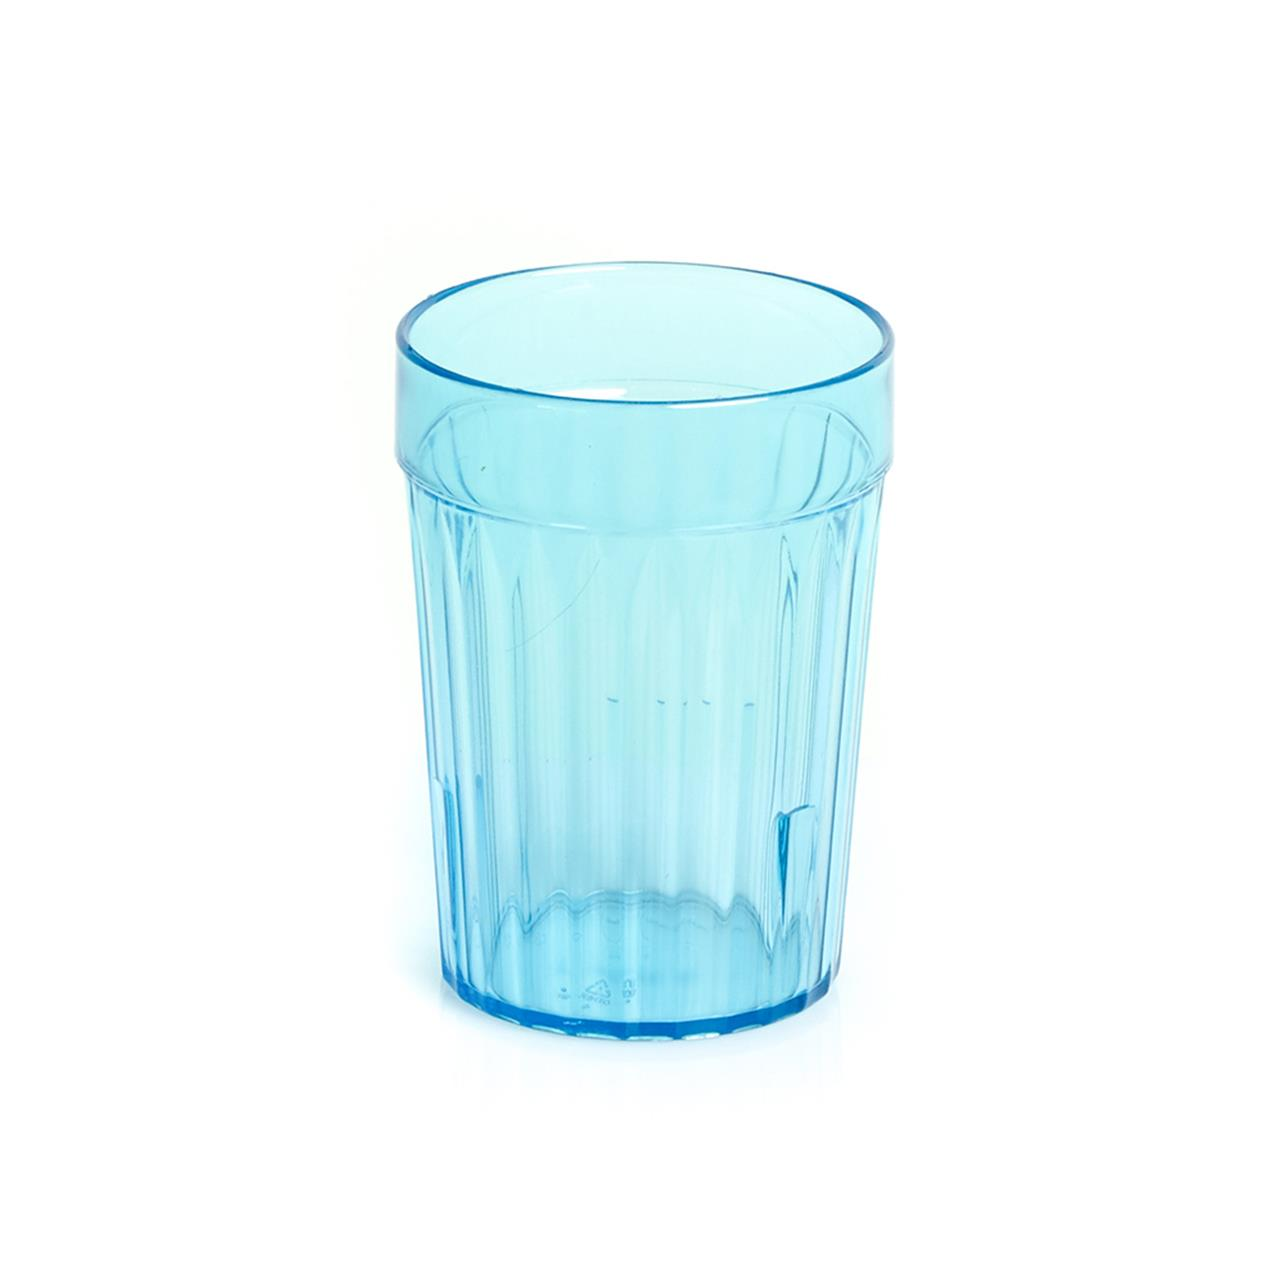 Autoplas Tumbler Feeder Cup Blue 230mL